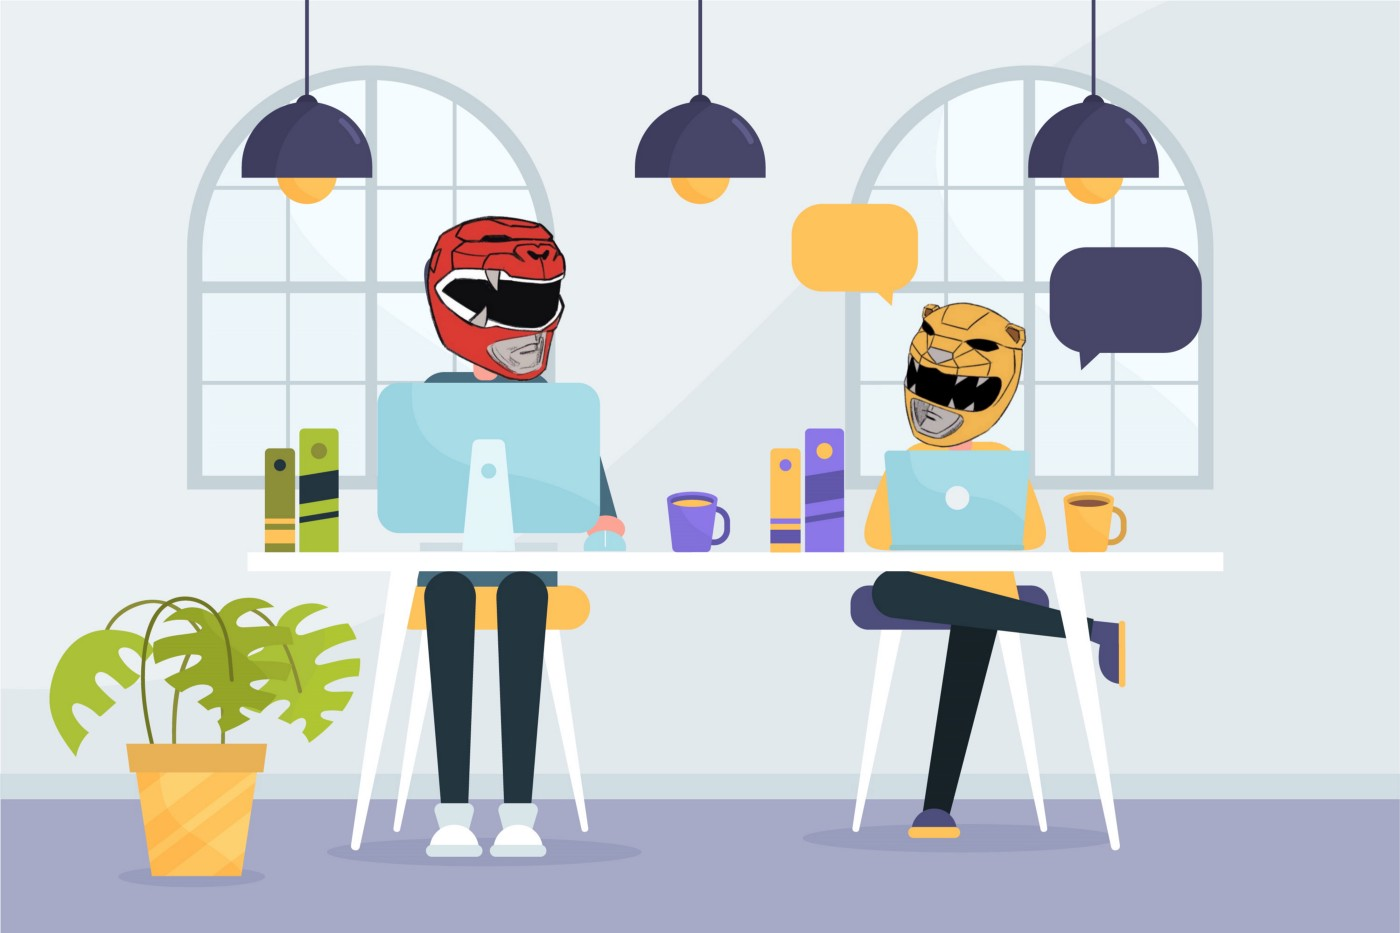 Two people sitting in an office while wearing Power Rangers helmets.